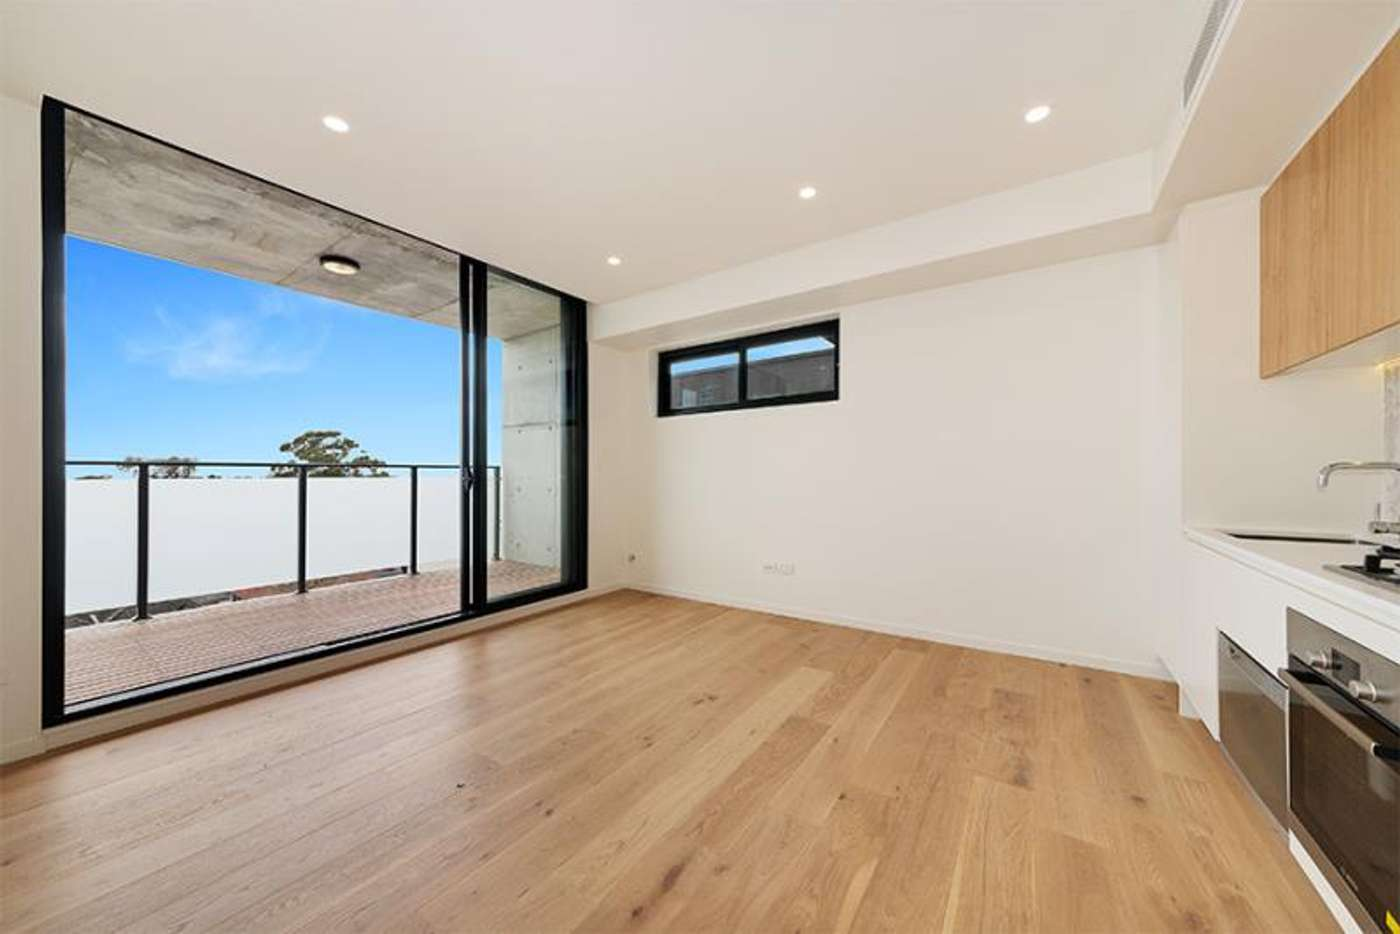 Main view of Homely apartment listing, 213/159 Frederick Street, Bexley NSW 2207